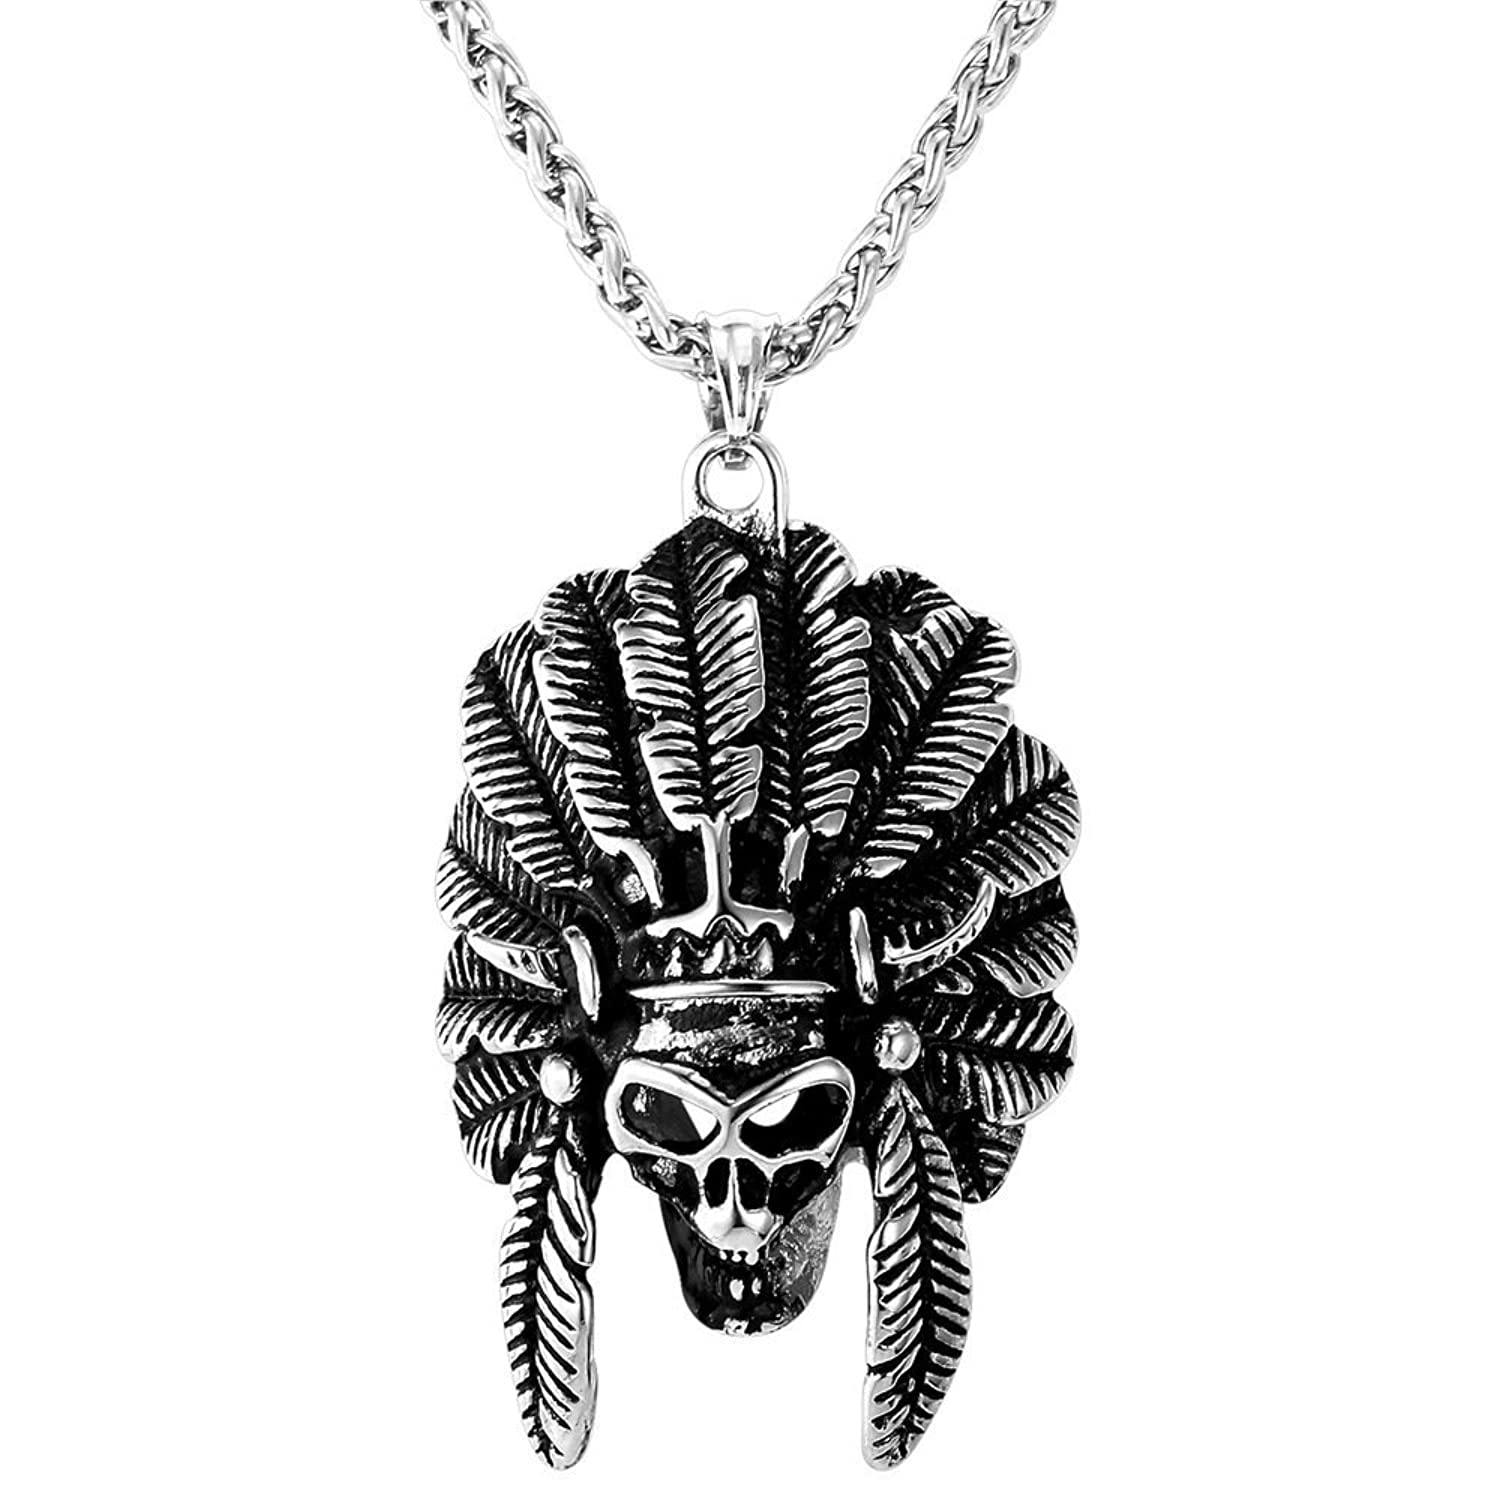 Native American Indian Style Tribal Chief Skull Pendant Necklace -Men's Cool 18K Gold Plated/Stainless Steel Punk Jewelry